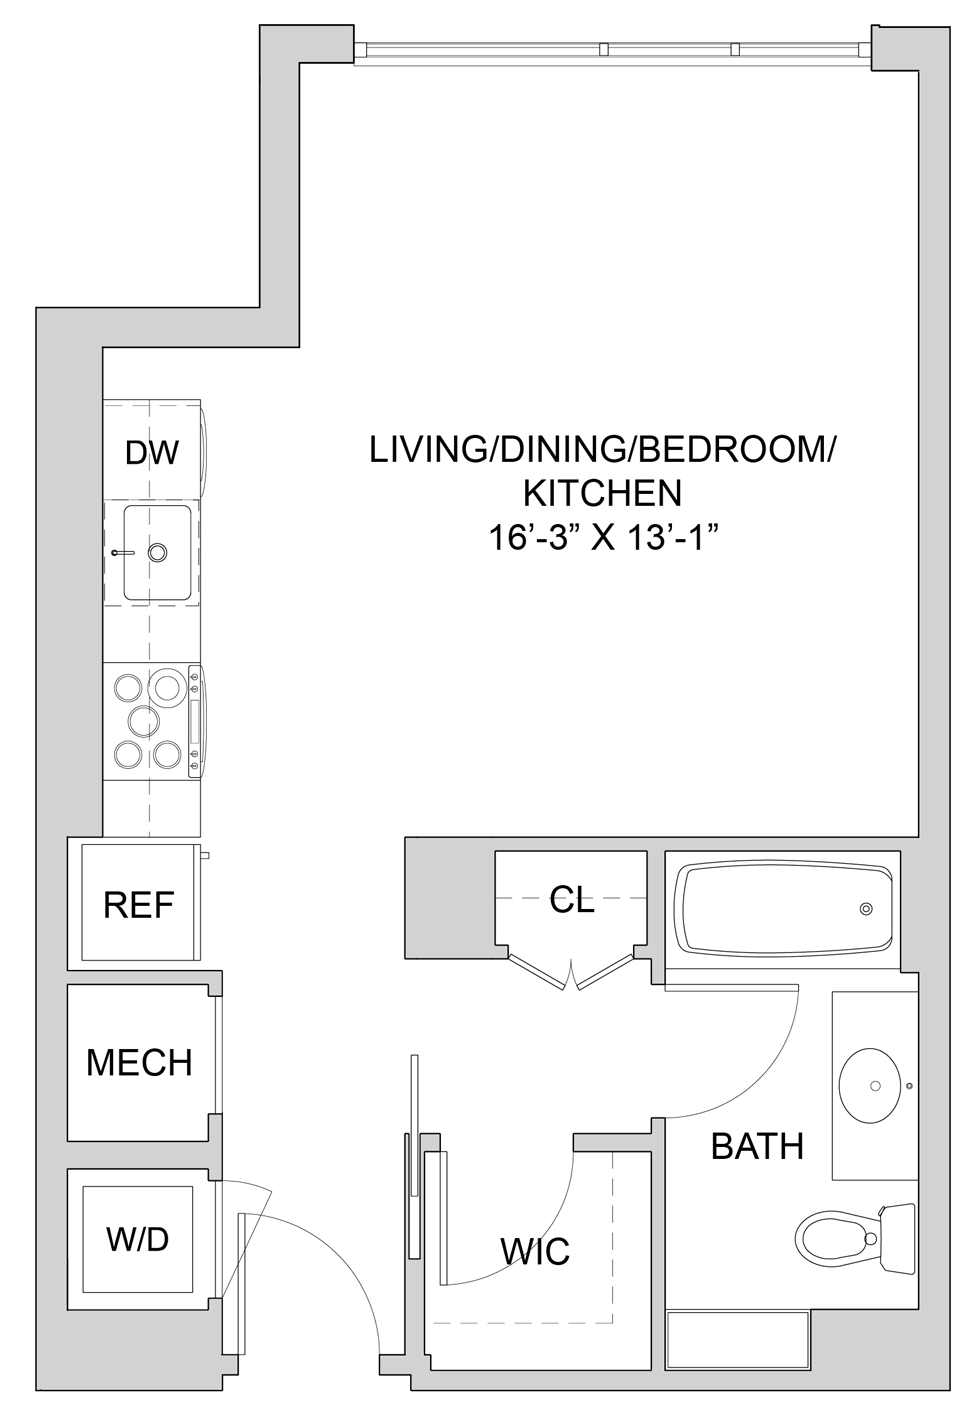 Floorplan N324 Image enlarged